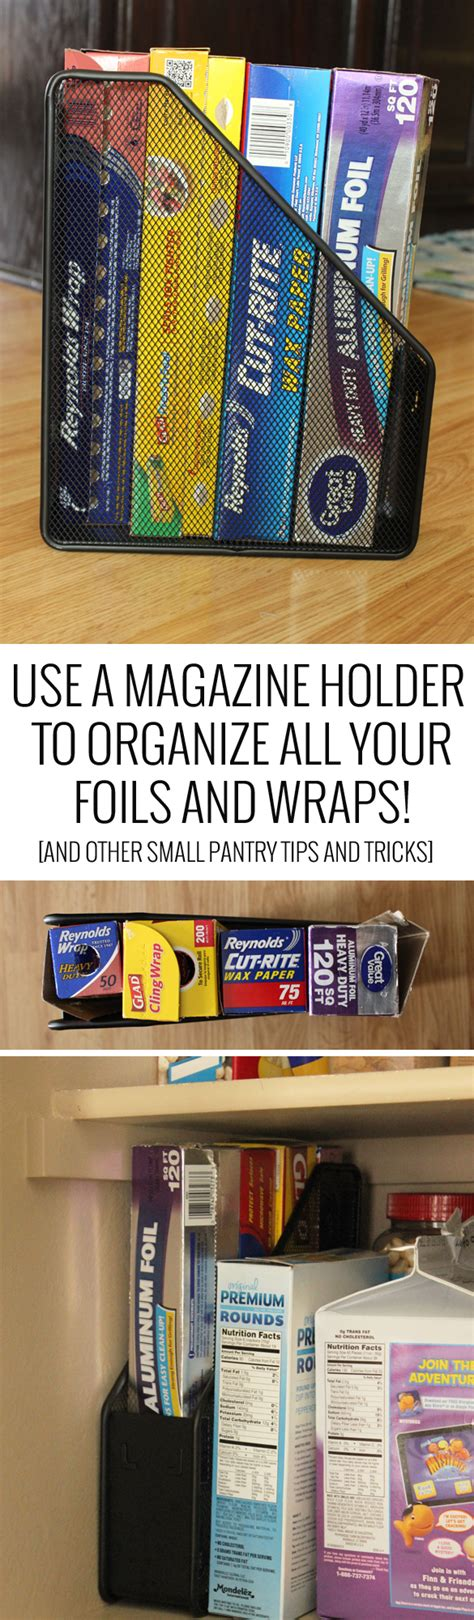 awesome tips and tricks for small pantry organization awesome tips and tricks for small pantry organization